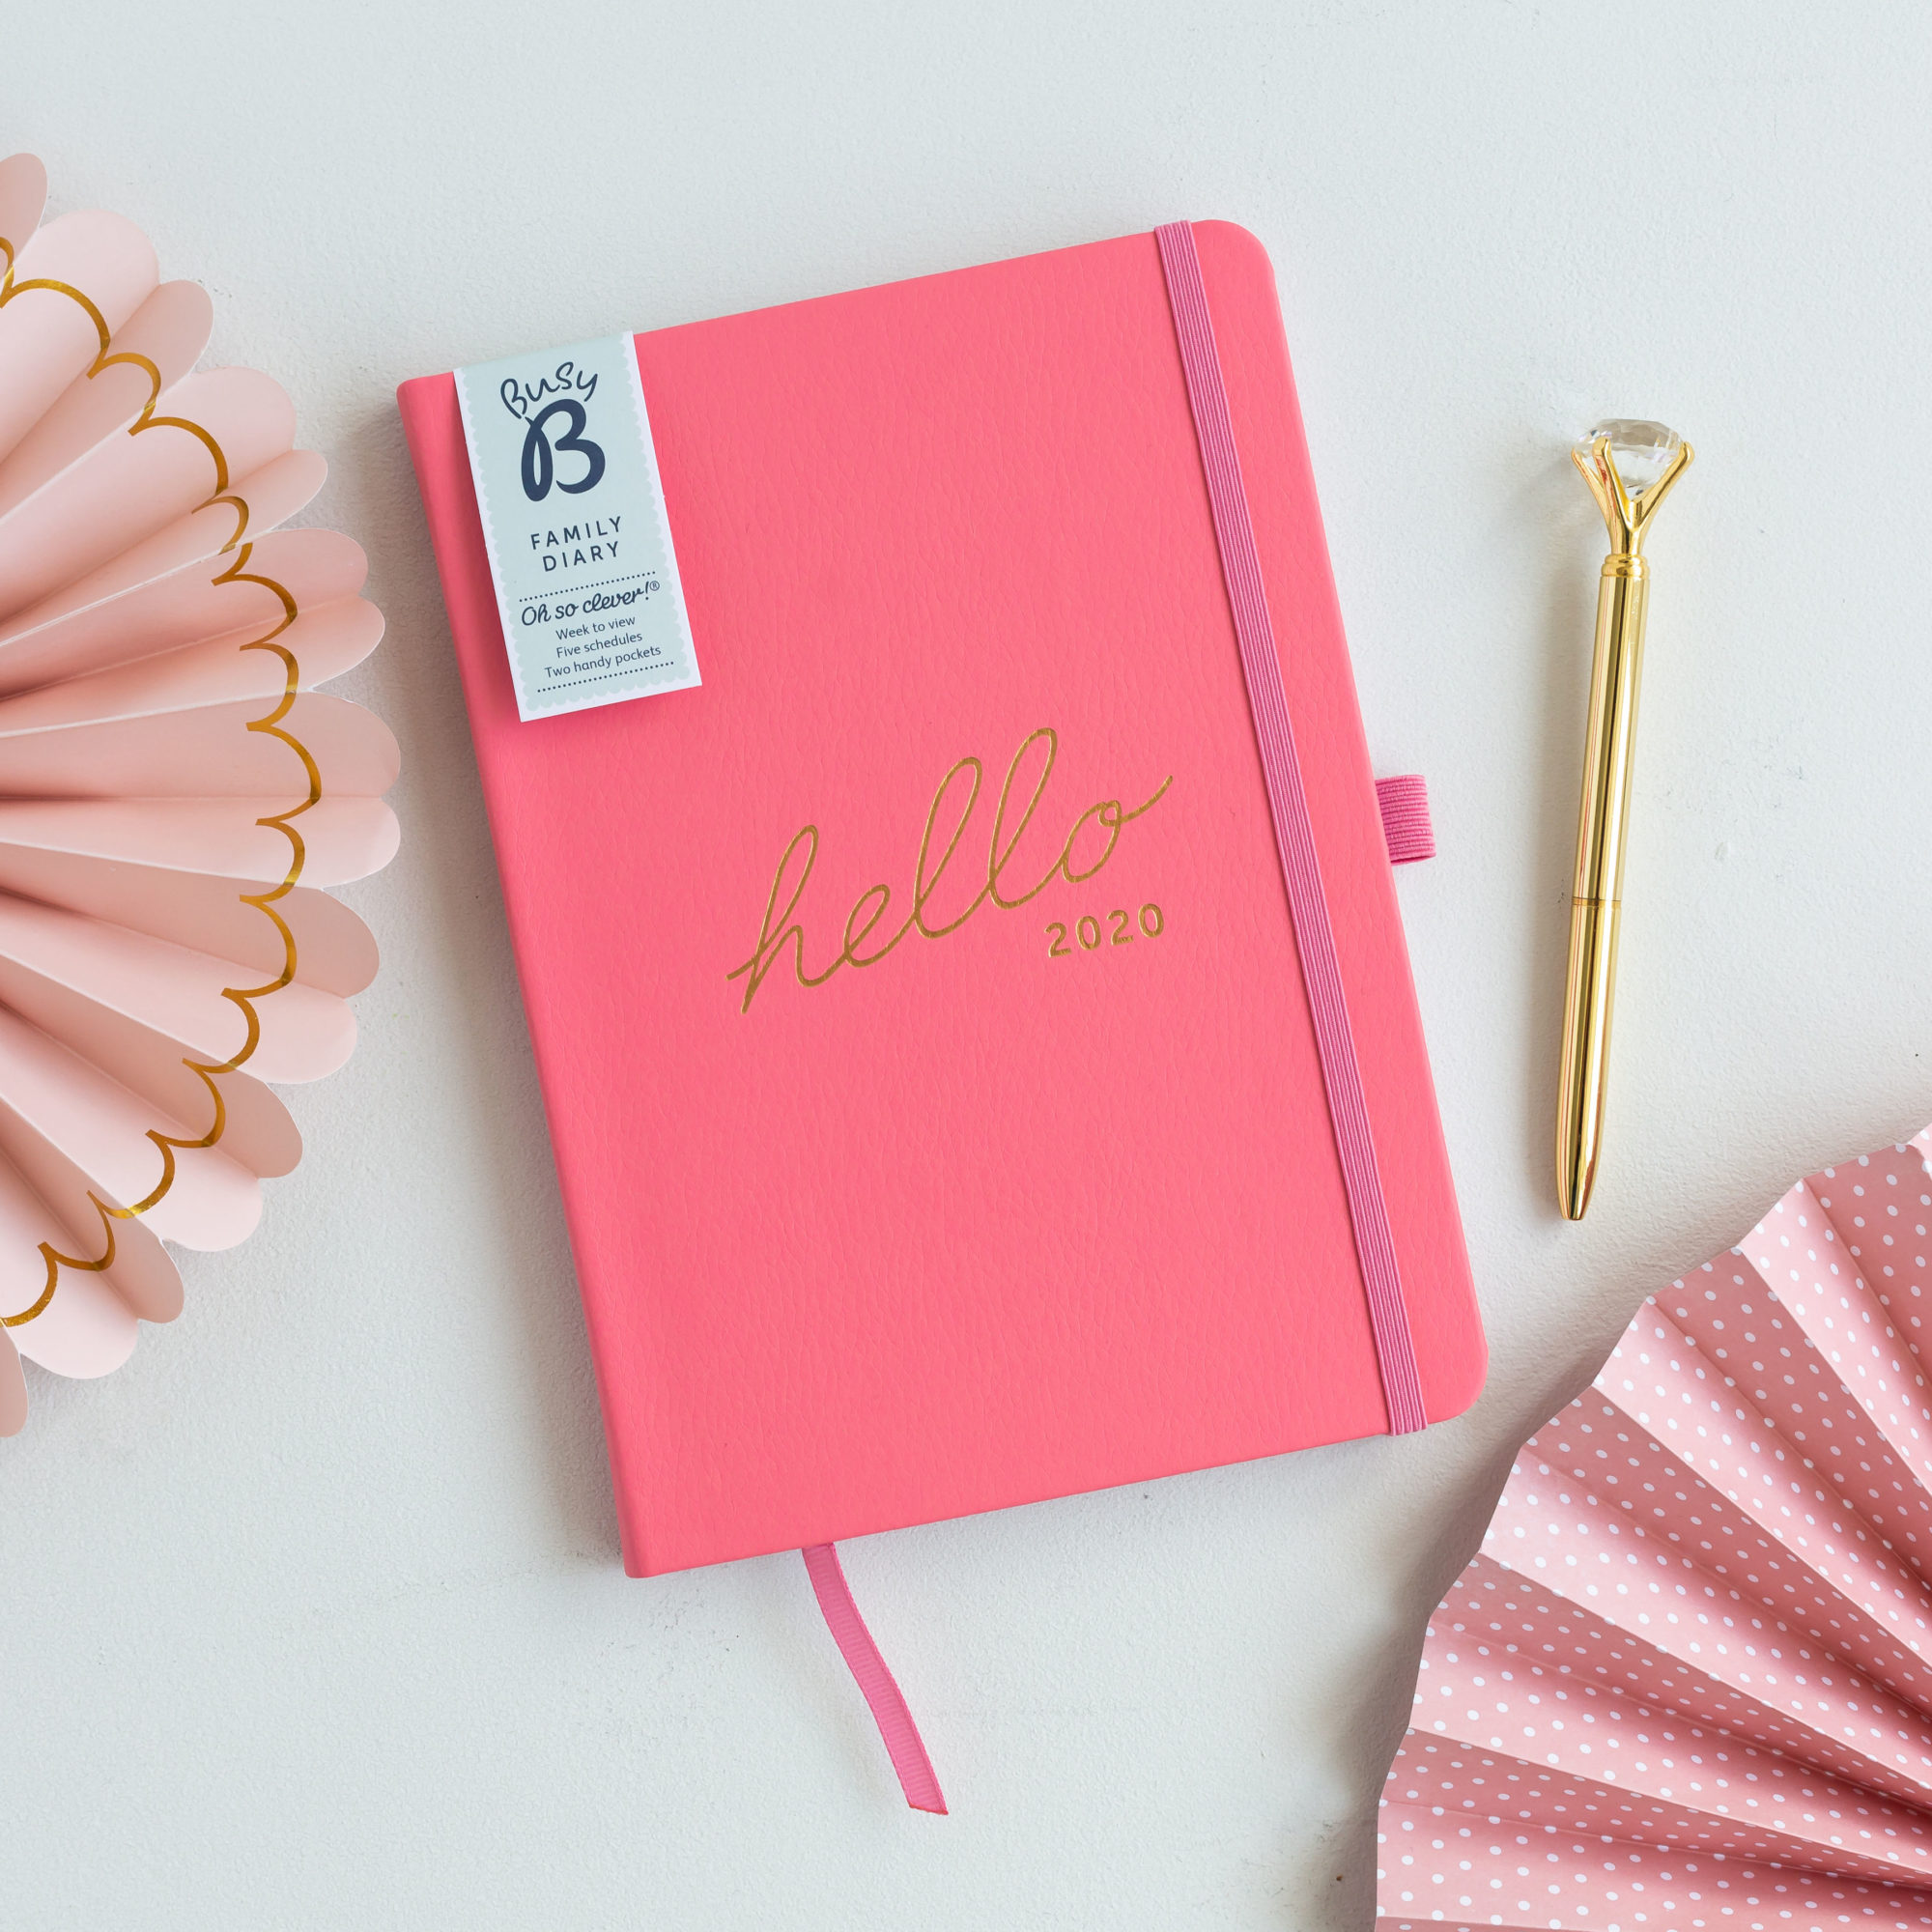 PRE-ORDER Busy B Family Planner 2020